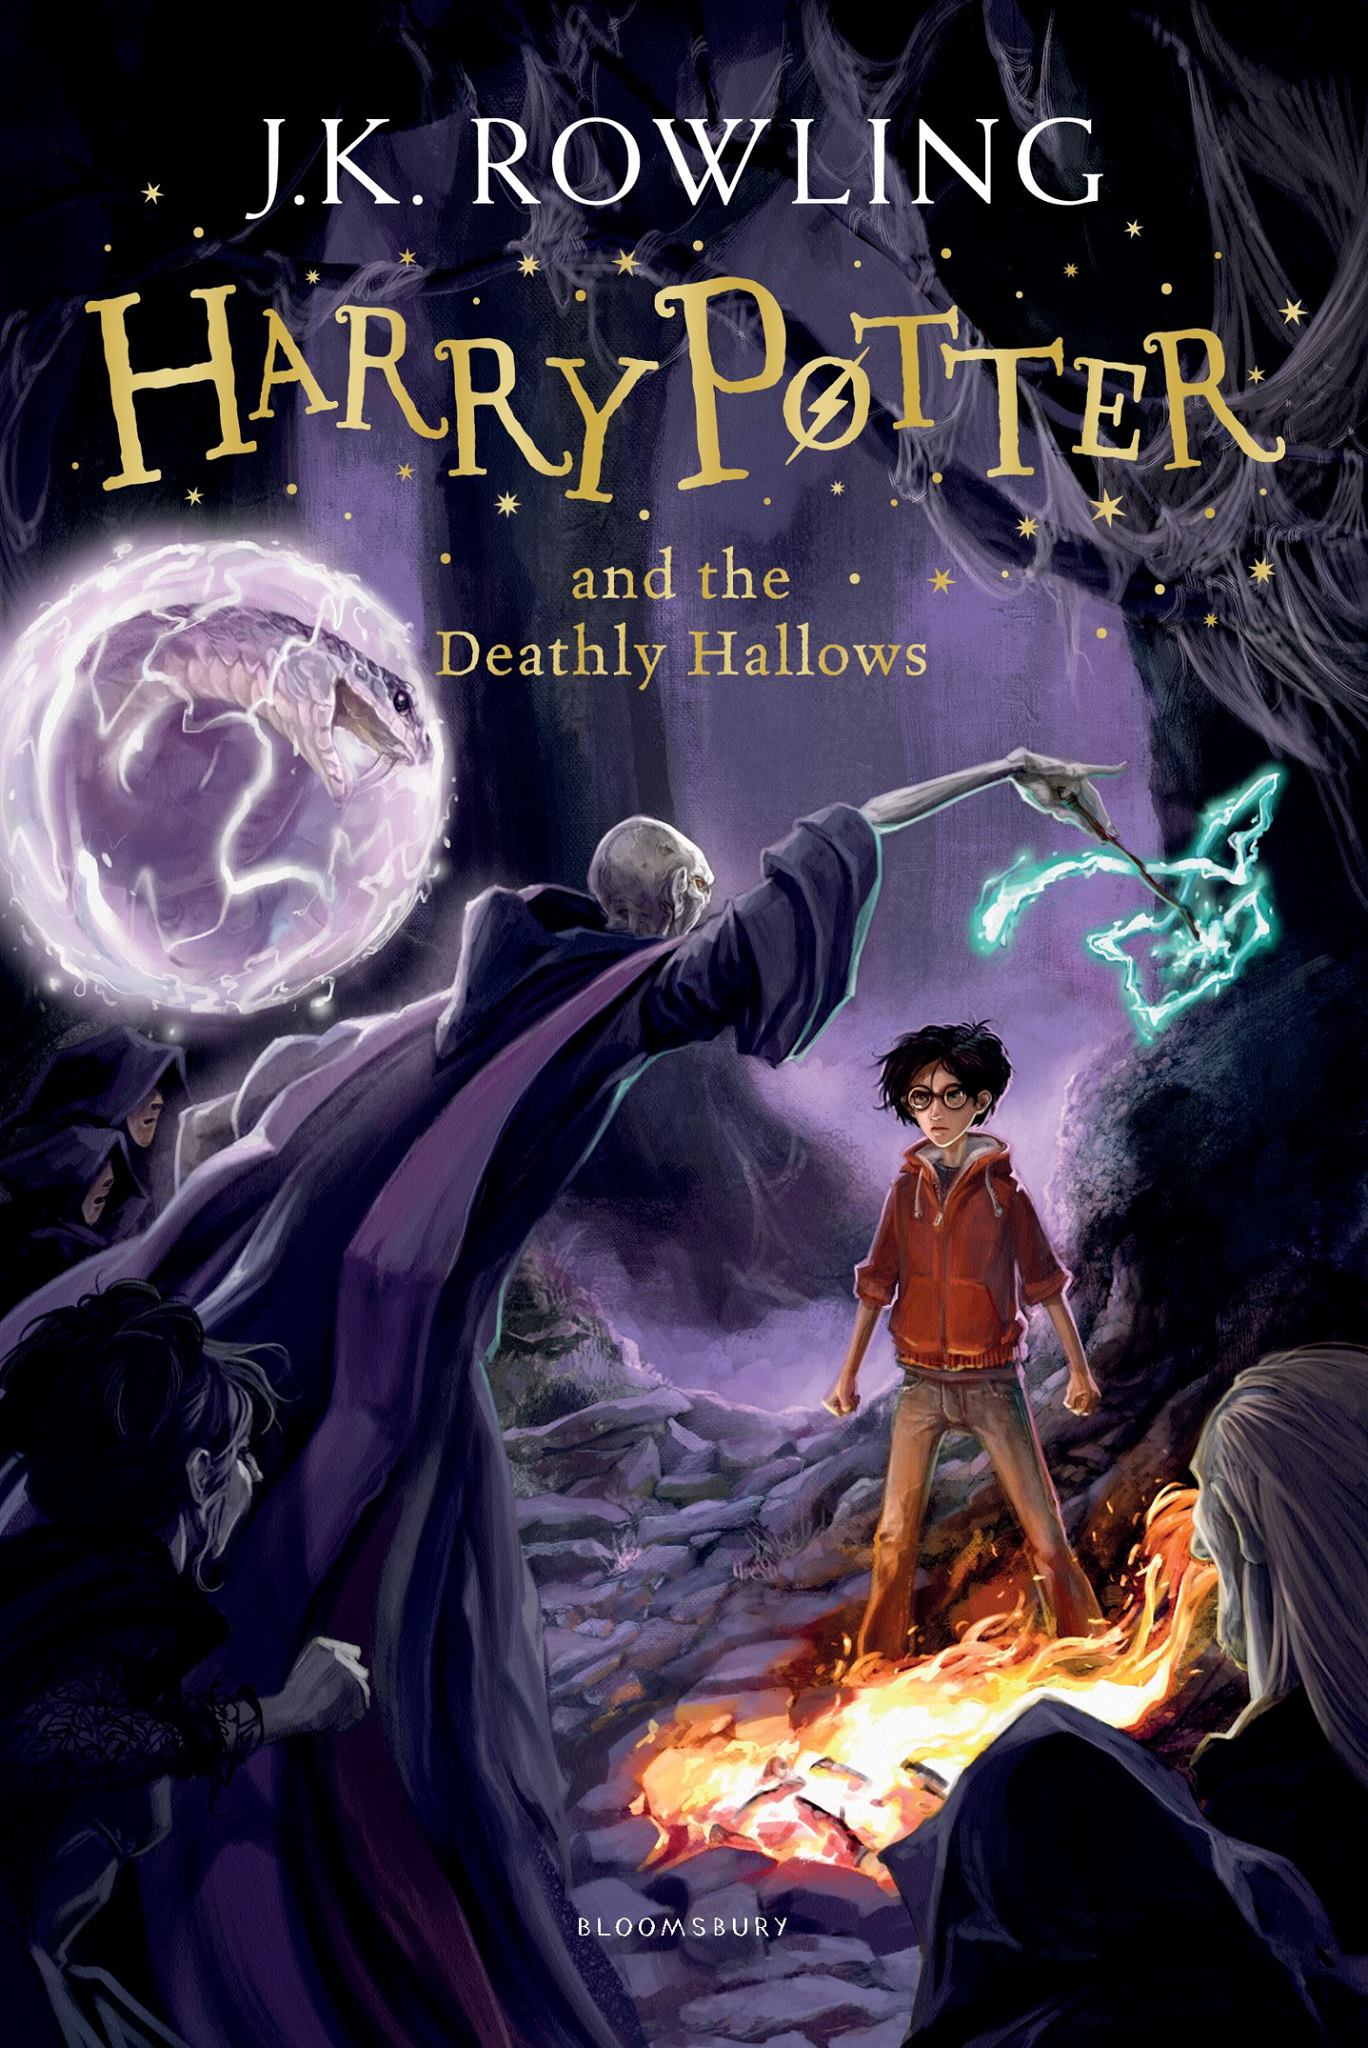 Harry Potter Deathly Hallows Ebook